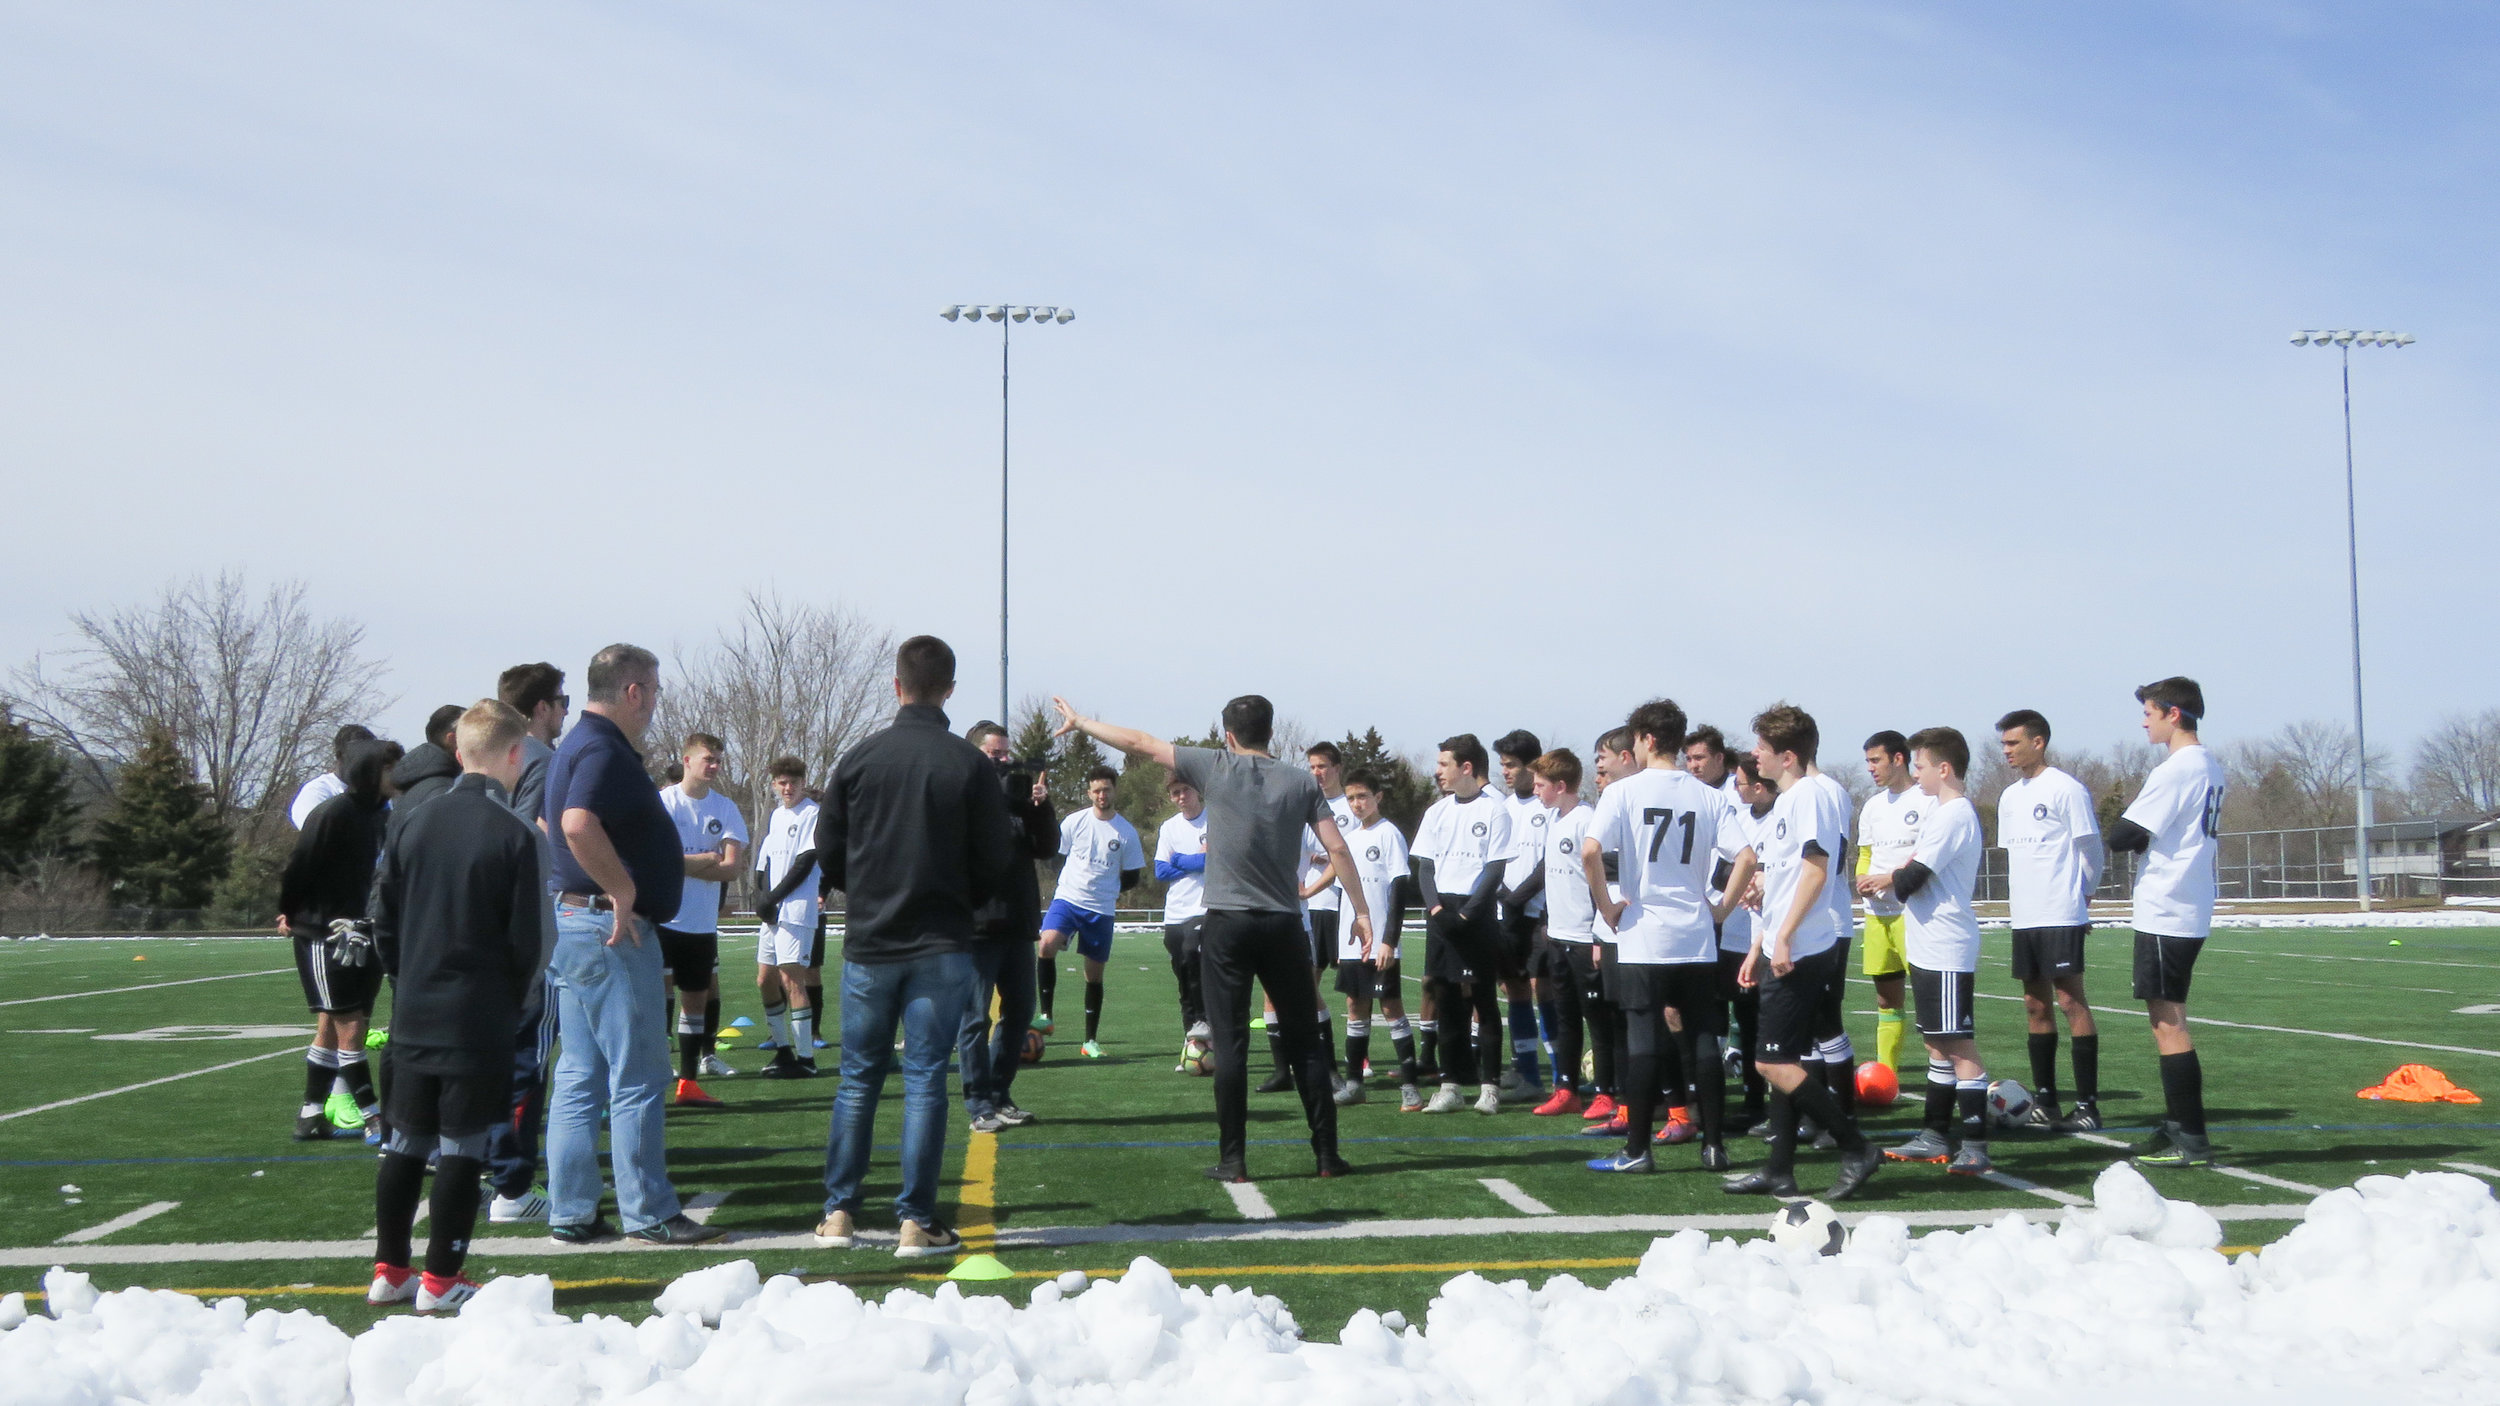 Director of Soccer, Santiago Almada kicking things off at the Combine.